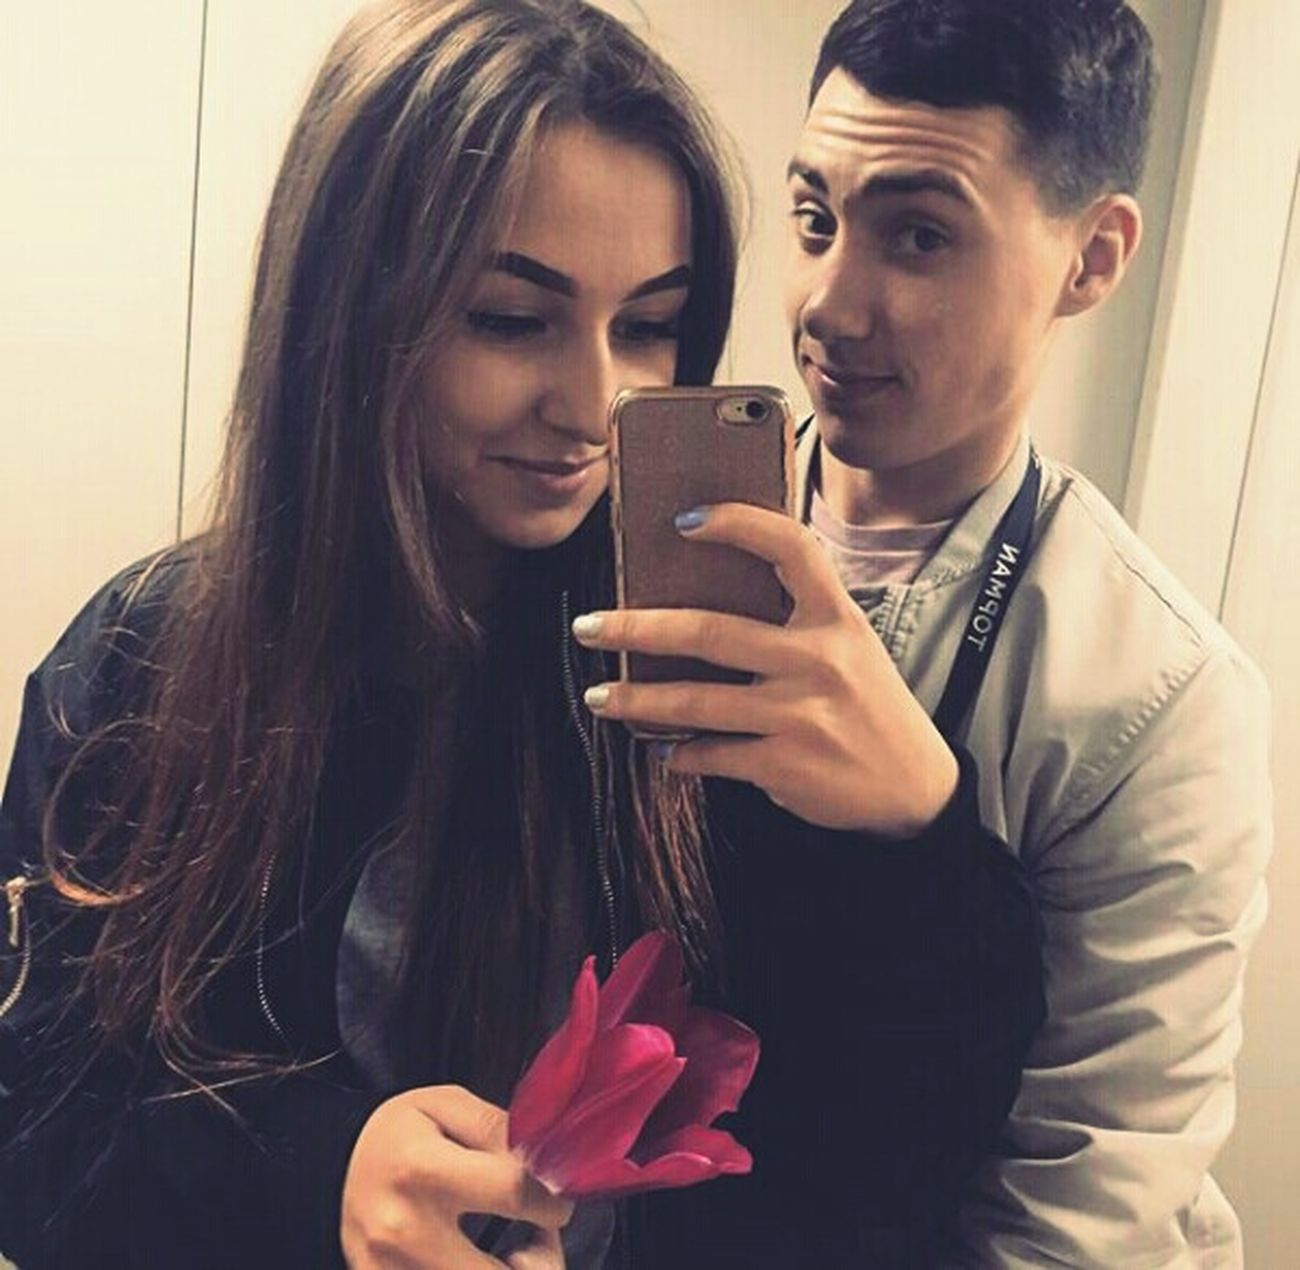 😂😅😁🌐😻💞💕 Adult Holding Selfie Myboy💕 Looking At Camera Love ♥ Still Life Happiness Lifestyles Funny Smiling Moscow City Russia First Eyeem Photo